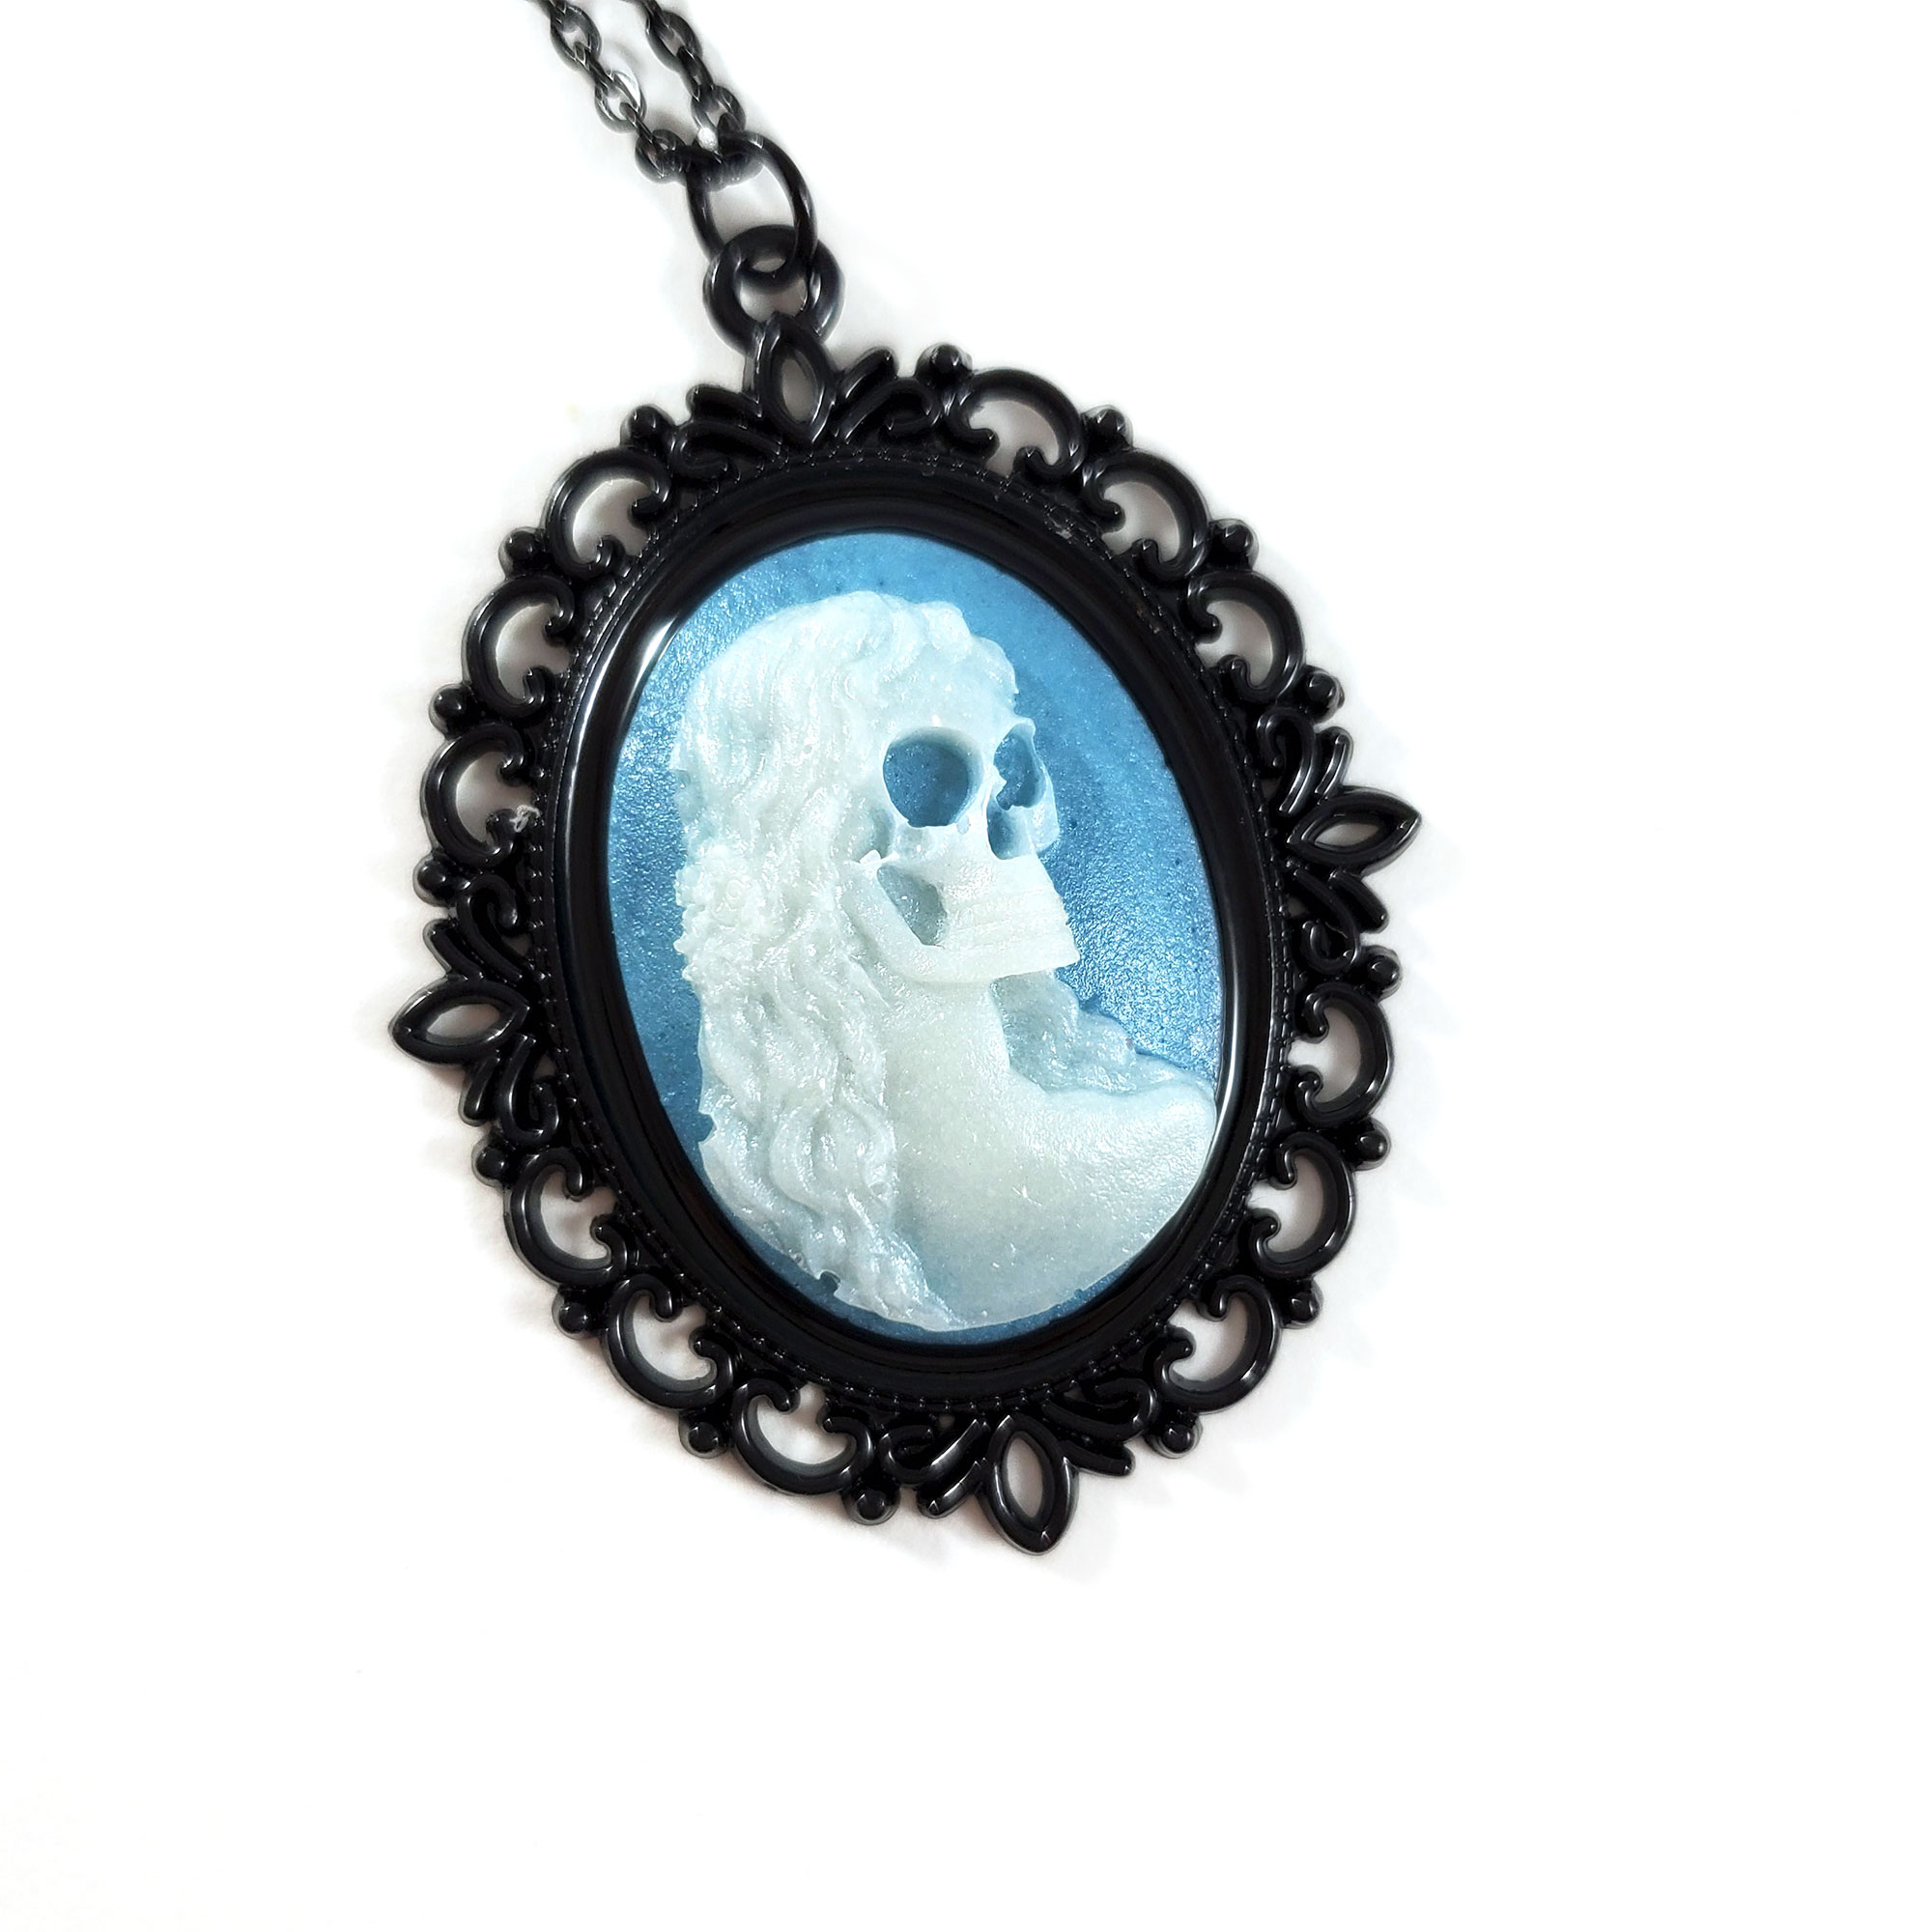 NE323DBH_teal_DeathBecomesHerCameoNecklace_ByWildeDesigns_03